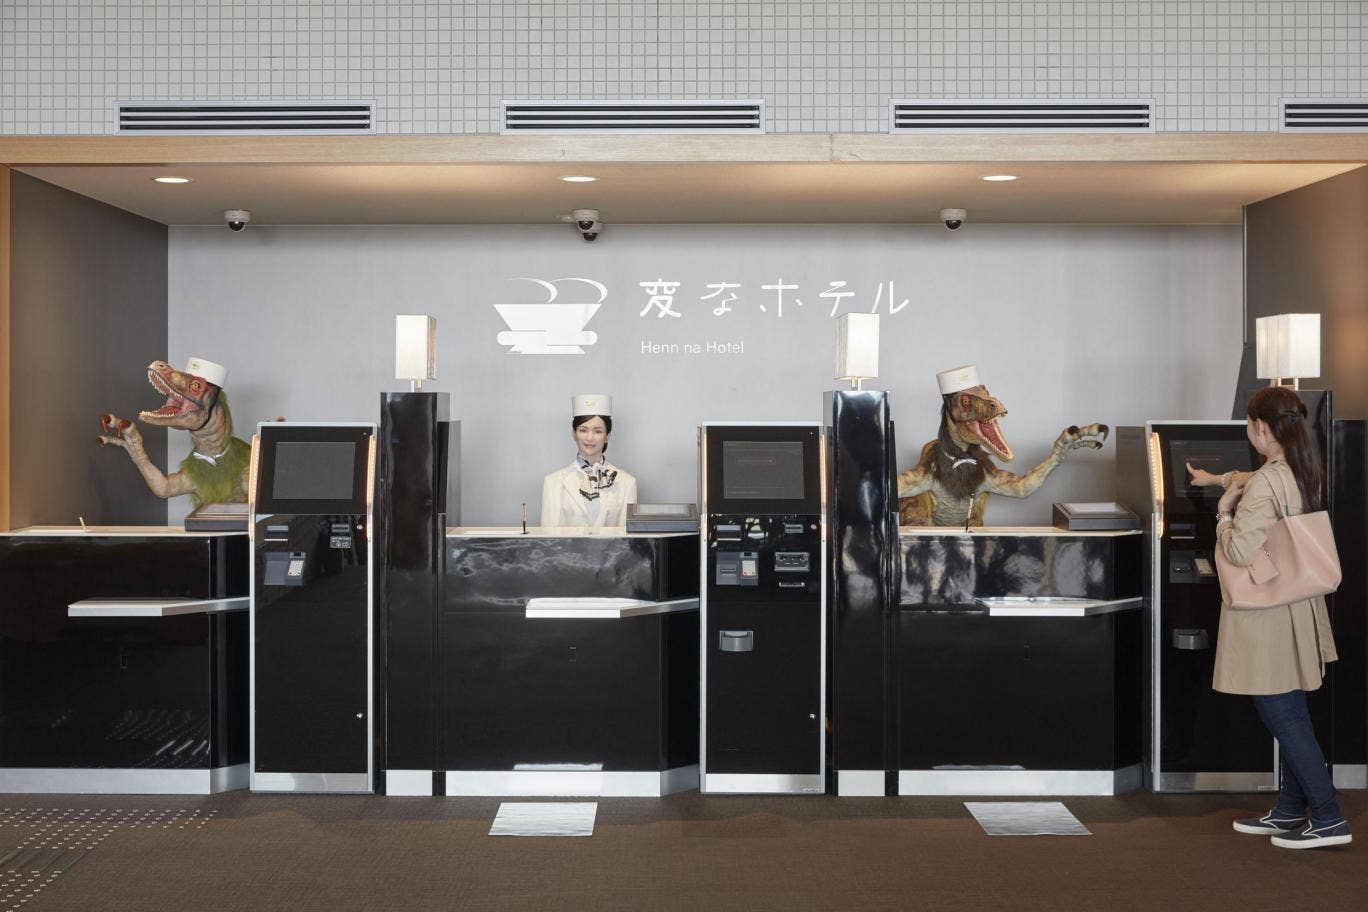 Henn-Na Hotel: What It's Like To Stay in A Japanese Hotel Staffed By Robots